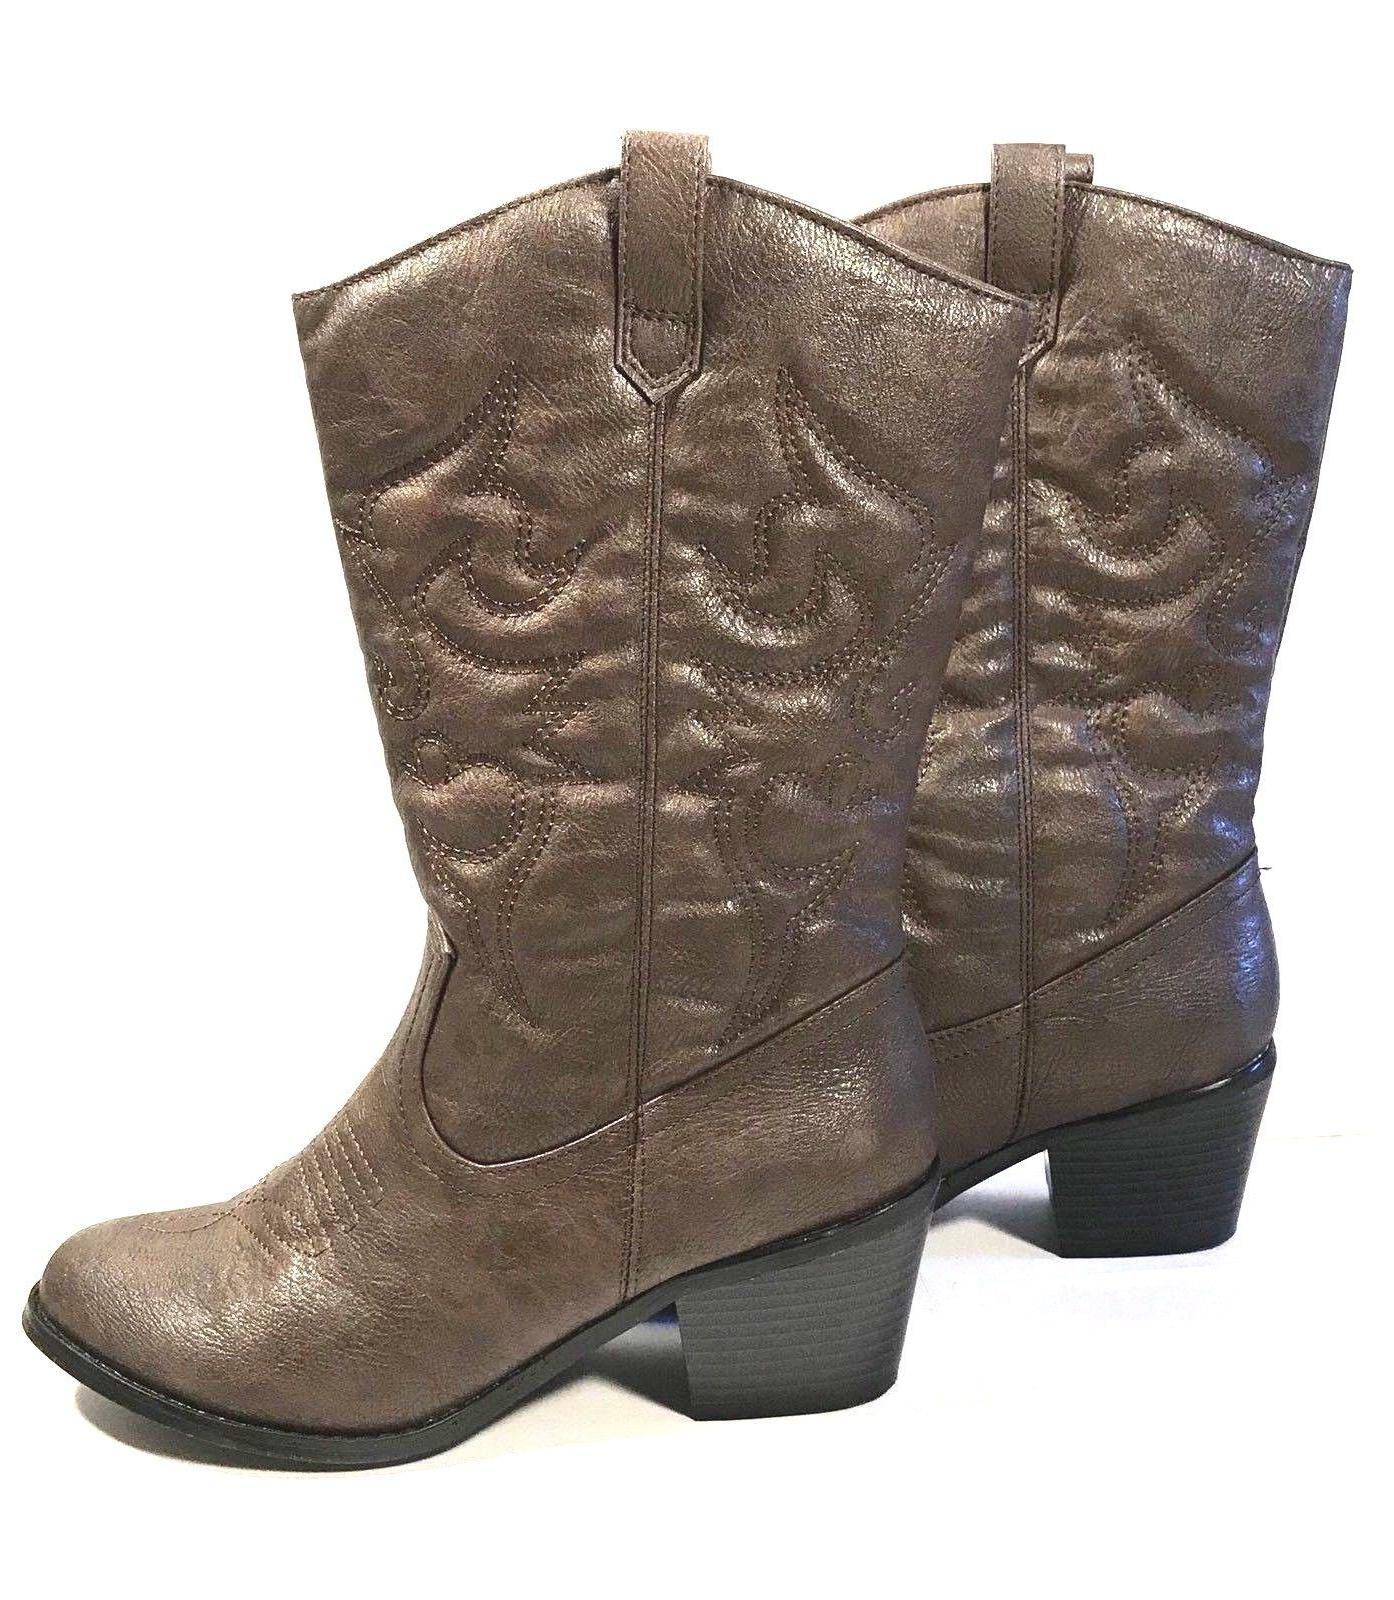 West Blvd Miami Cowboy Western Boots Brown Pu Women Size 6.5